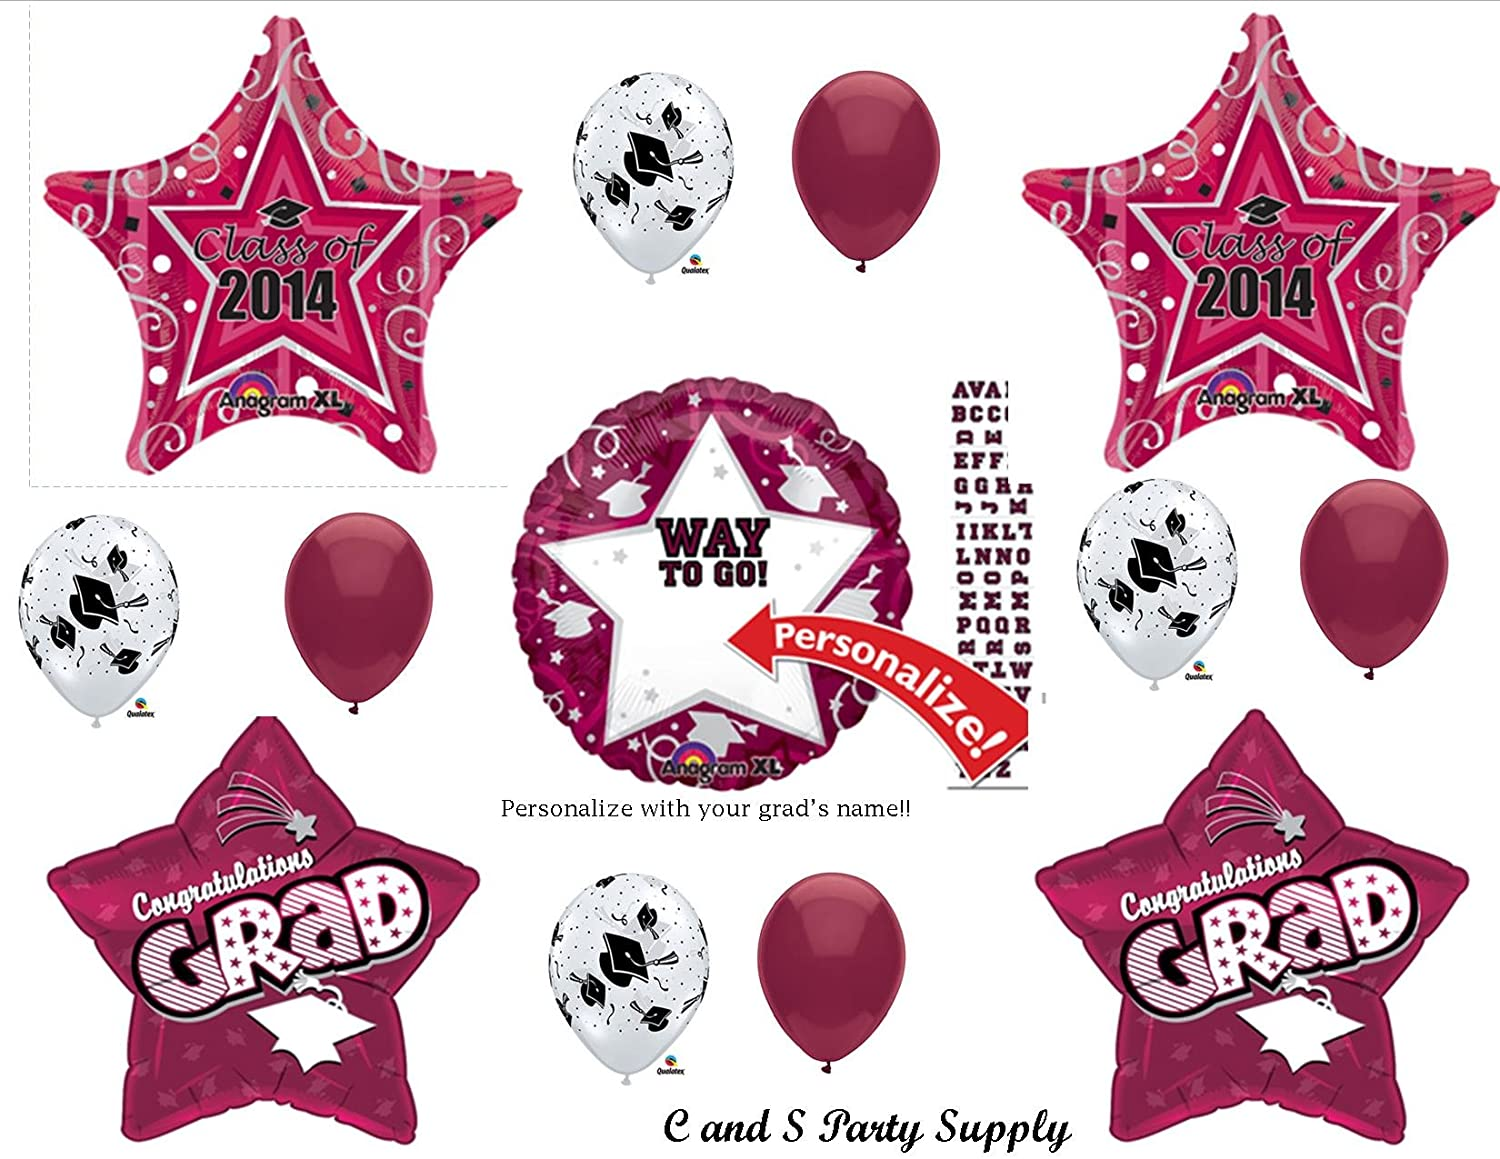 2014 graduation decorations - Amazon Com Burgundy Maroon Graduation Class Of 2014 Personalized Party Balloons Decorations Supplies Kitchen Dining